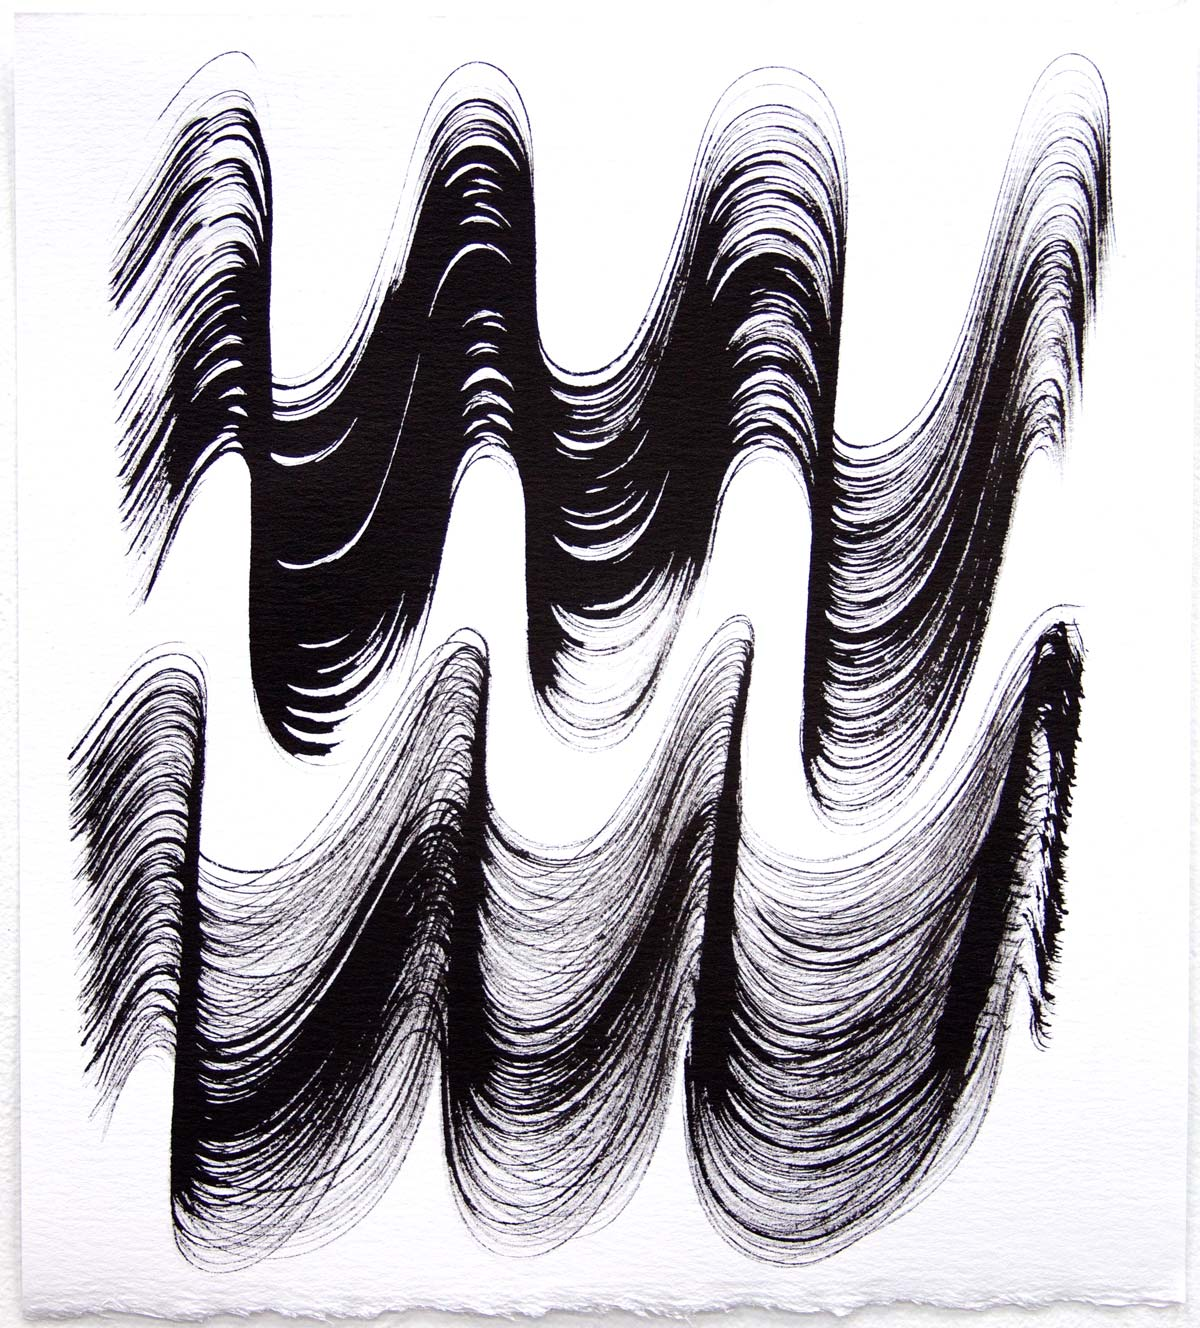 Waves 19,  2018, Sumi Ink on rag paper, 10 x 9 in.